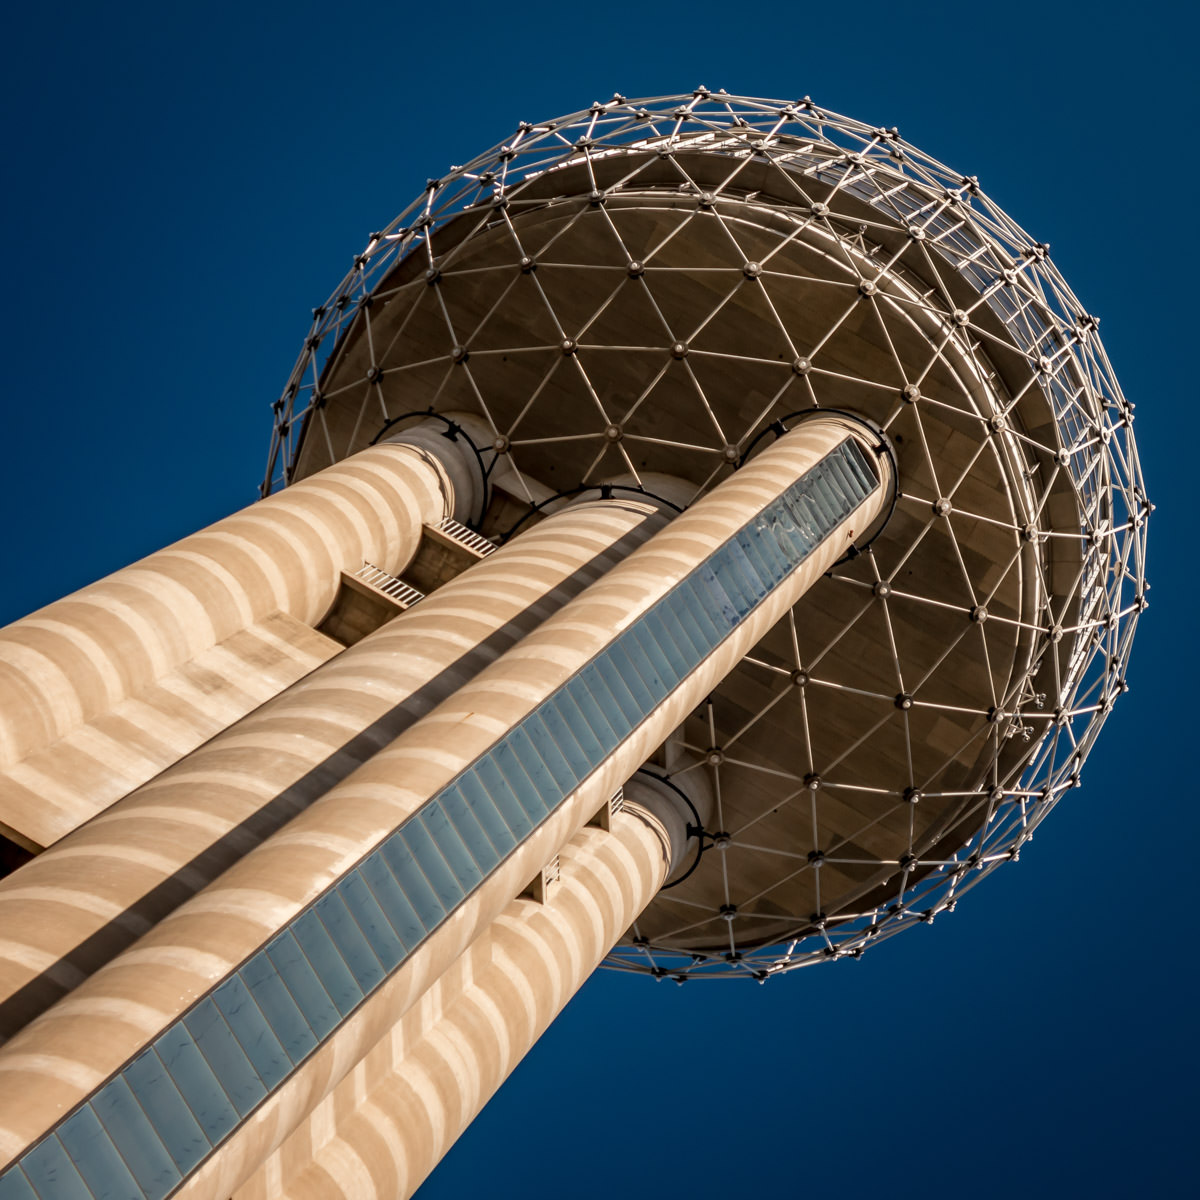 The top of Dallas' Reunion Tower resembles a giant steel dandelion seed head rising into the clear blue sky over North Texas.